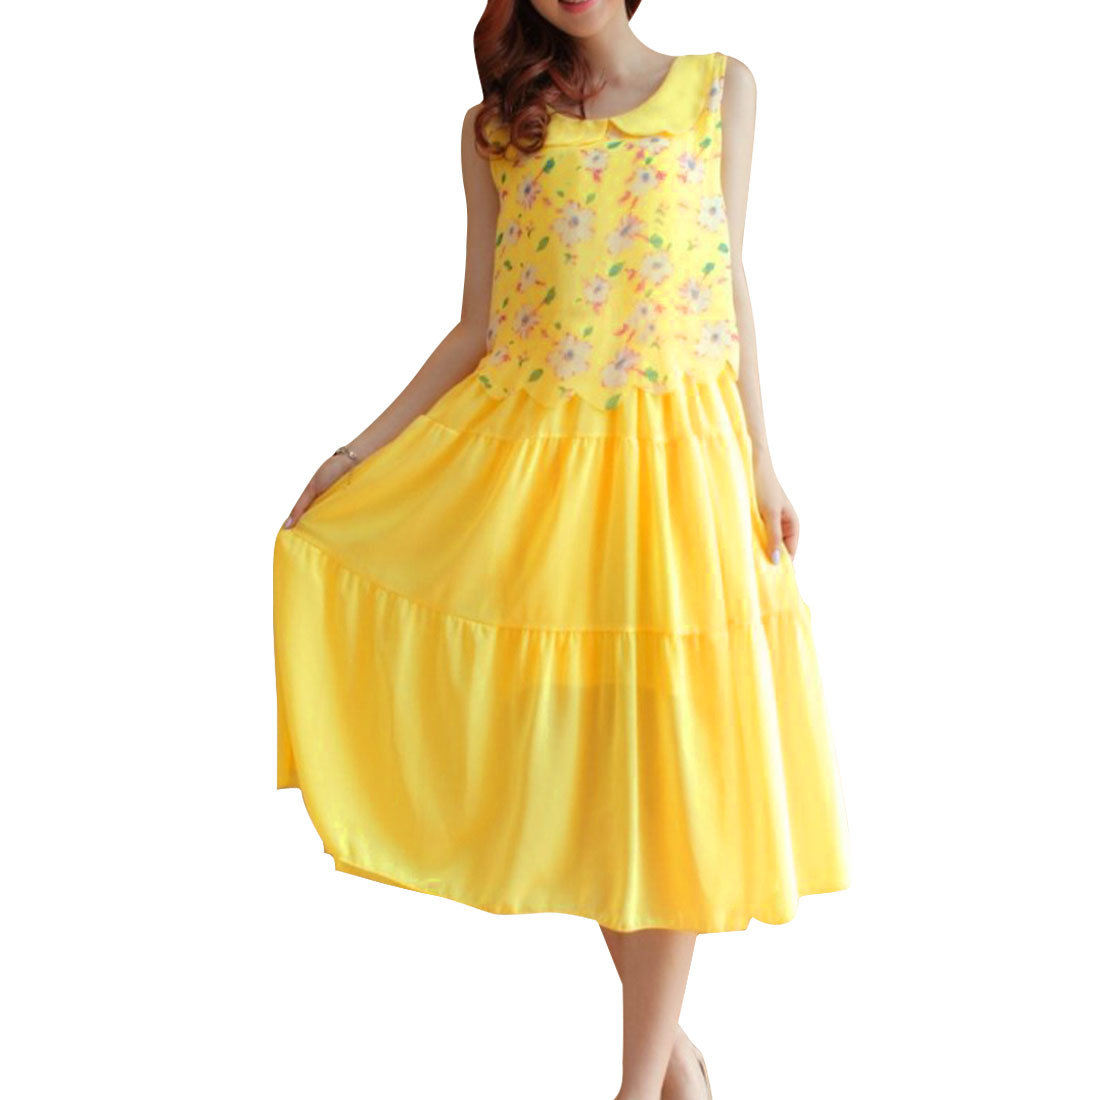 Woman Chic Peter Pan Collar Floral Prints Elastic Waist Yellow Dress XS